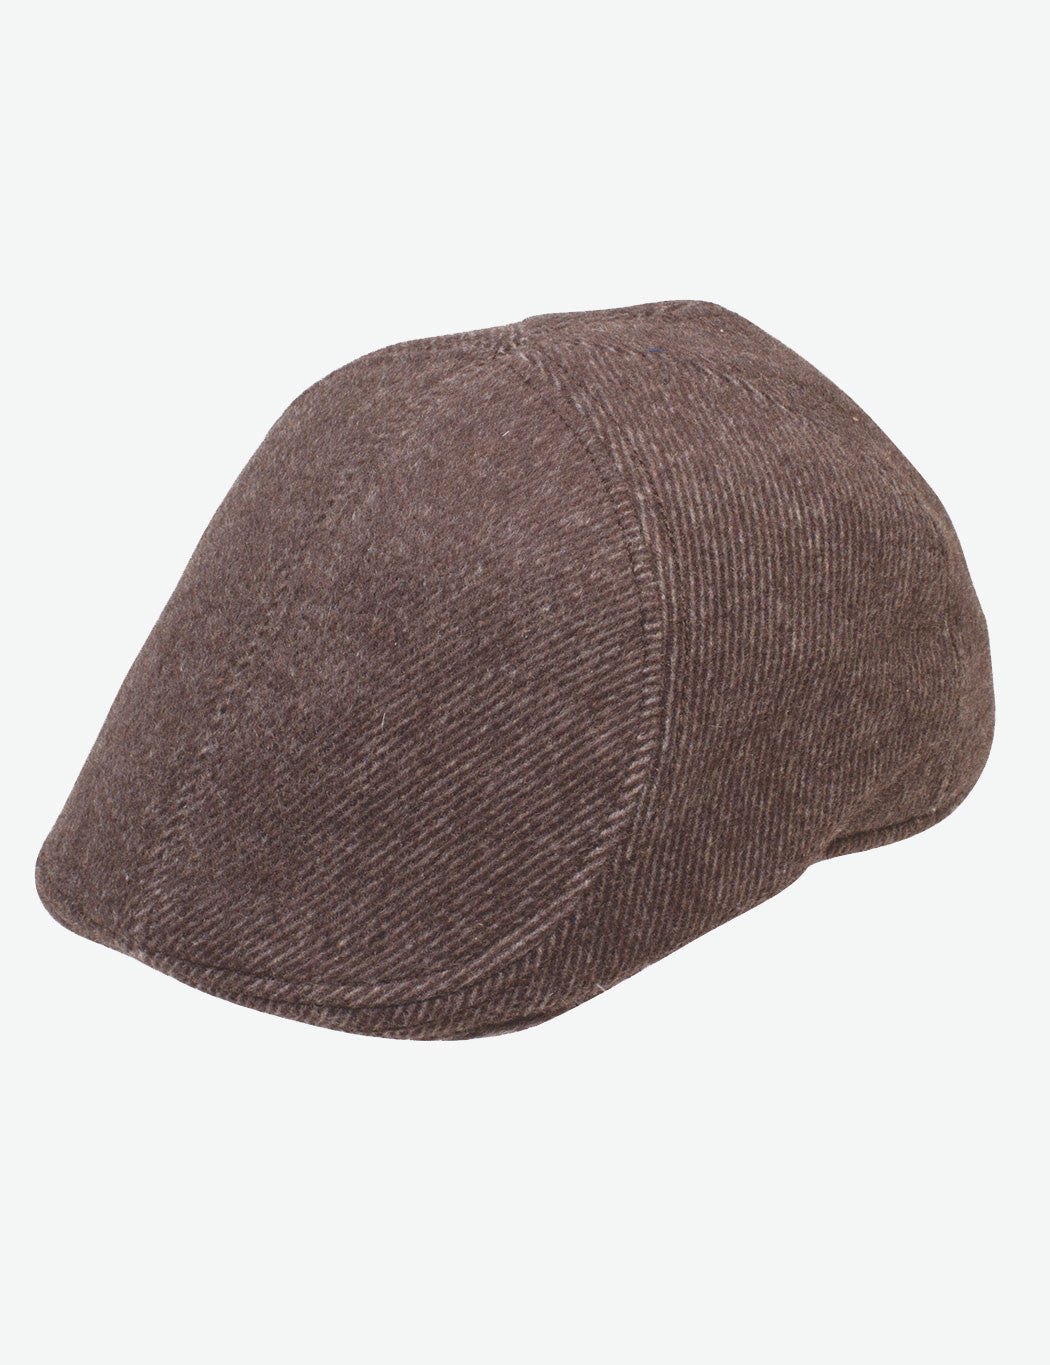 Goorin Manhattan Ivy Flat Cap - Brown